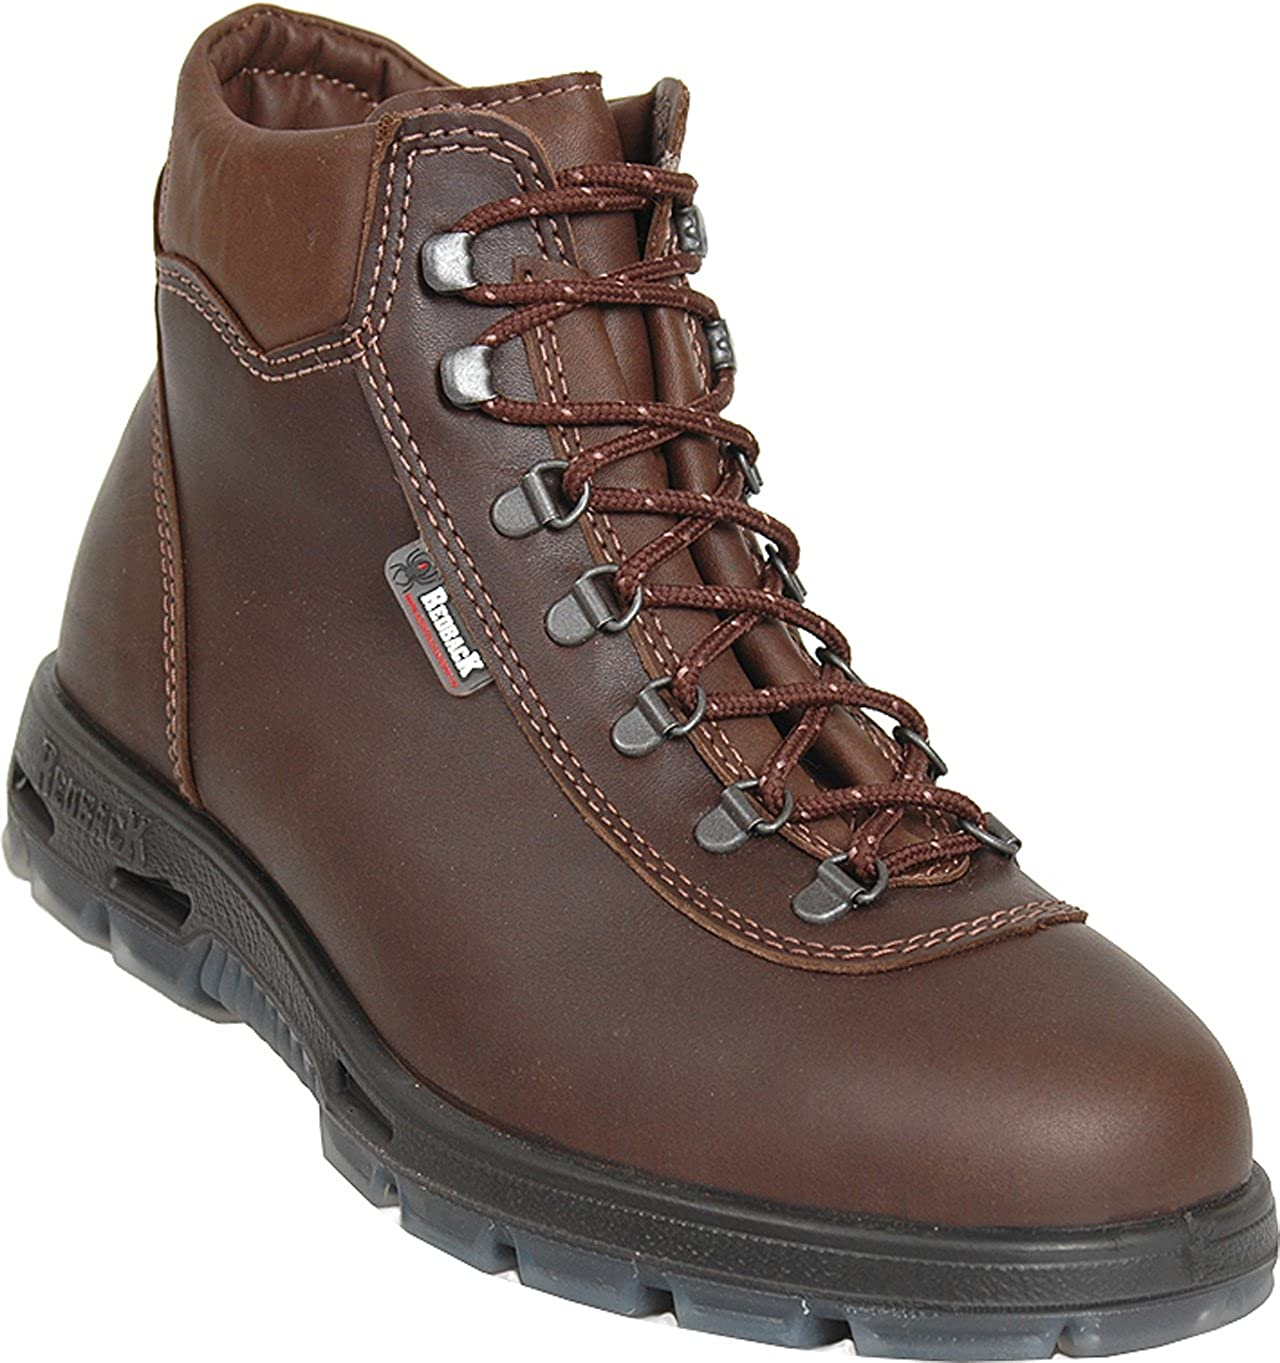 d66408ea6be Redback Uepu Boots Leather Puma Aquapel Brown Brown Size: 9.5 ...